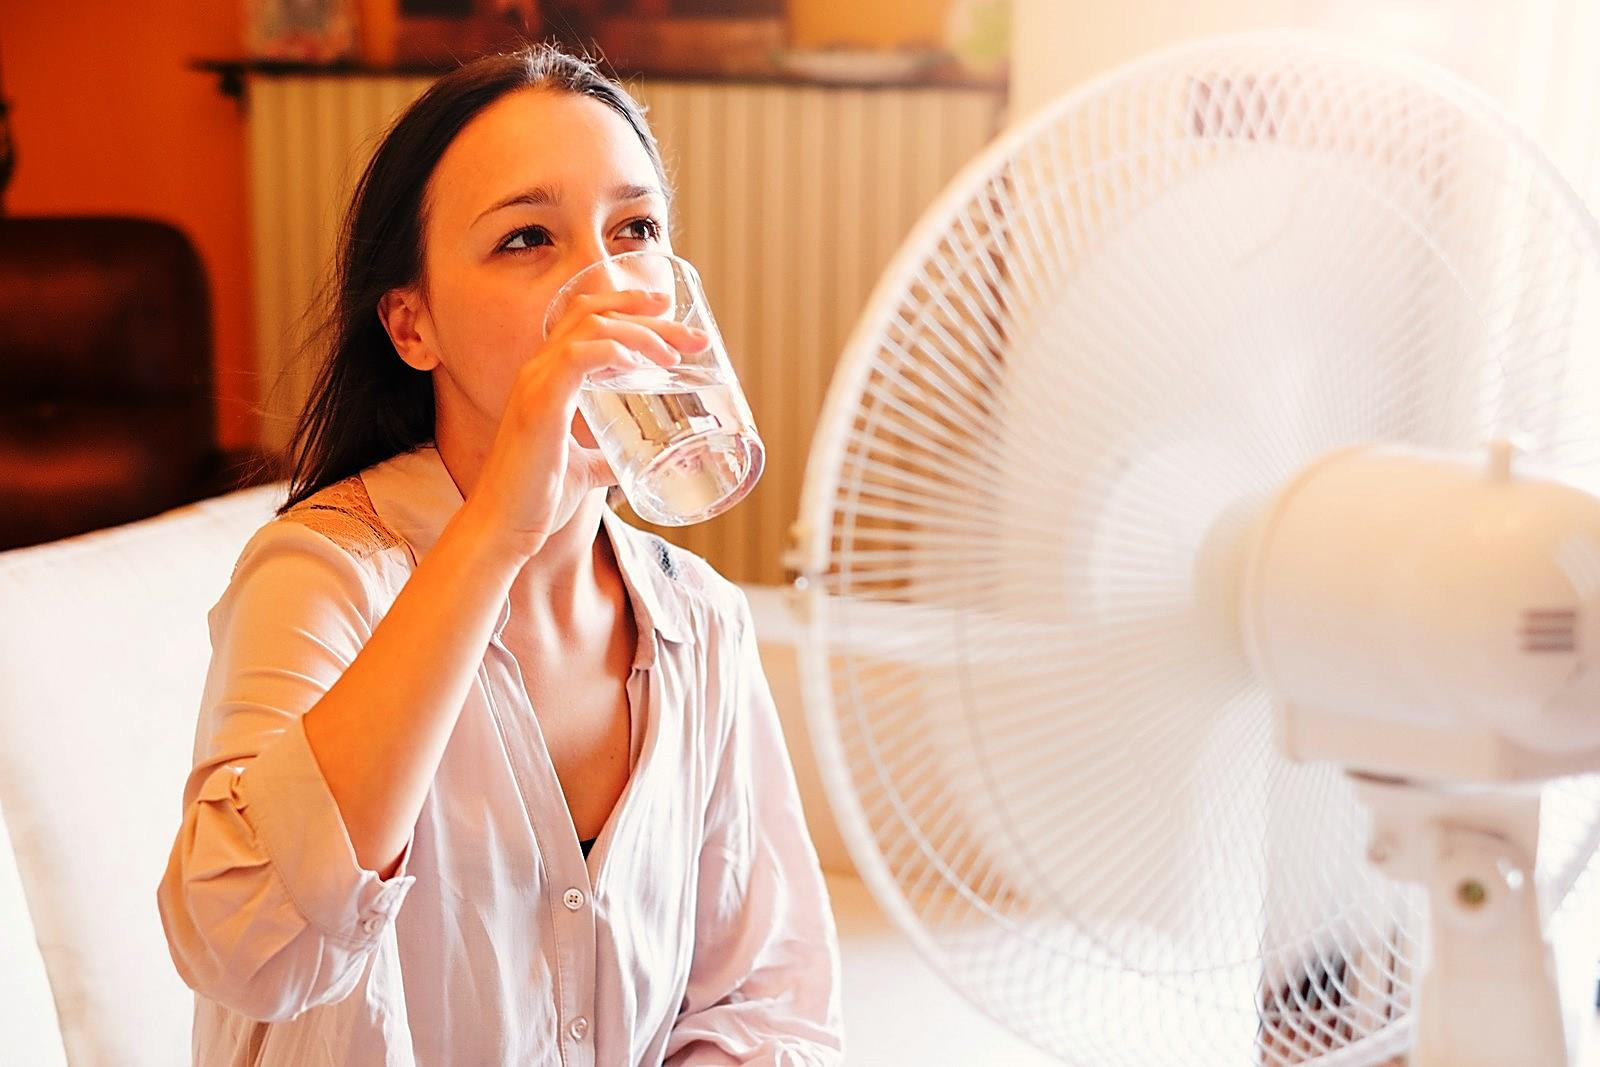 Practical Hydration Tips for when it's Hot